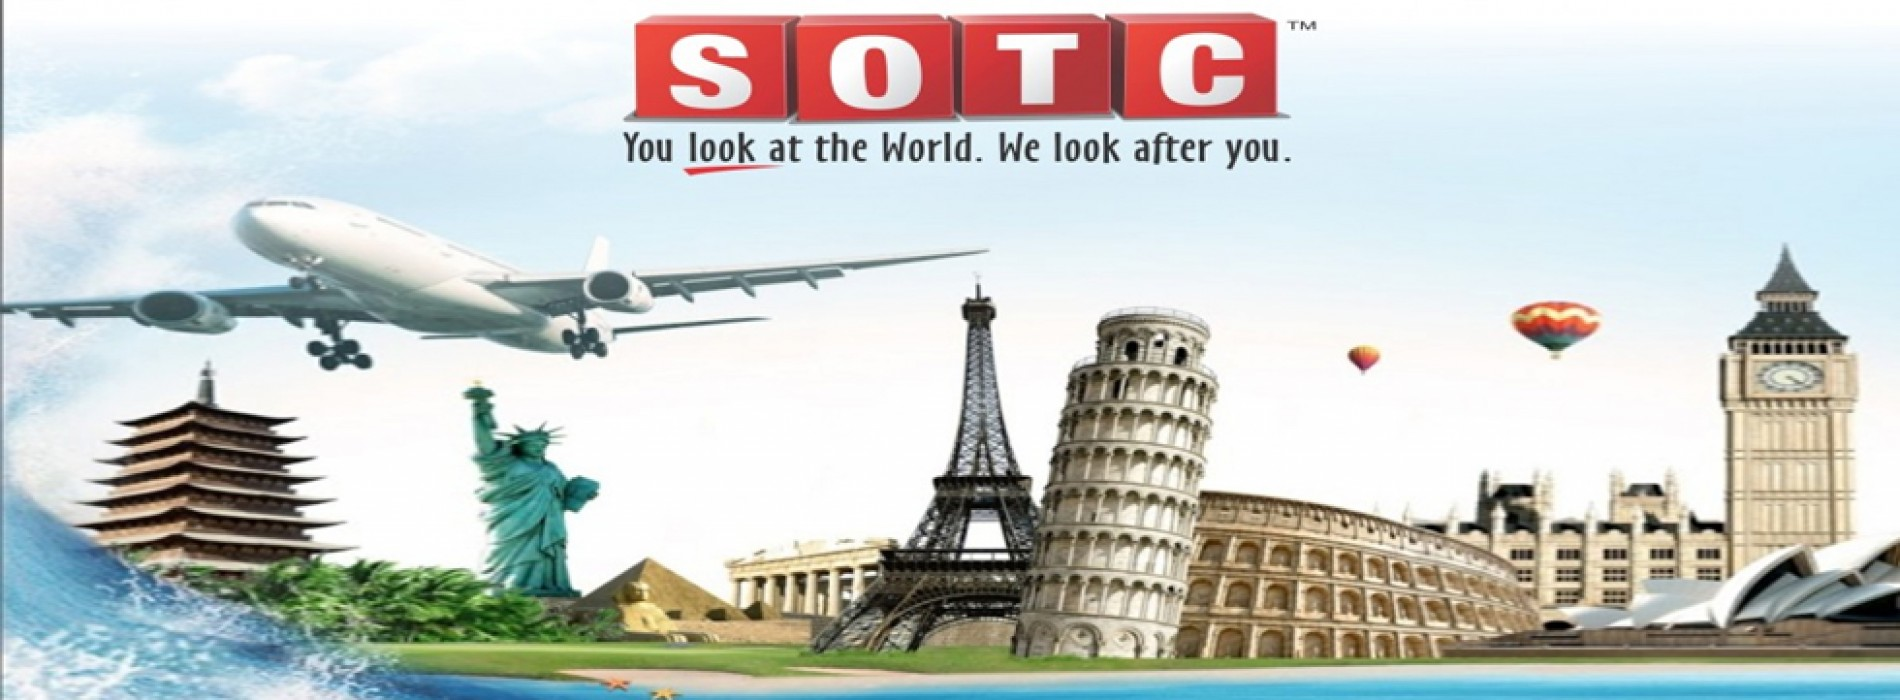 SOTC Travel introduces special monsoon travel packages across destinations